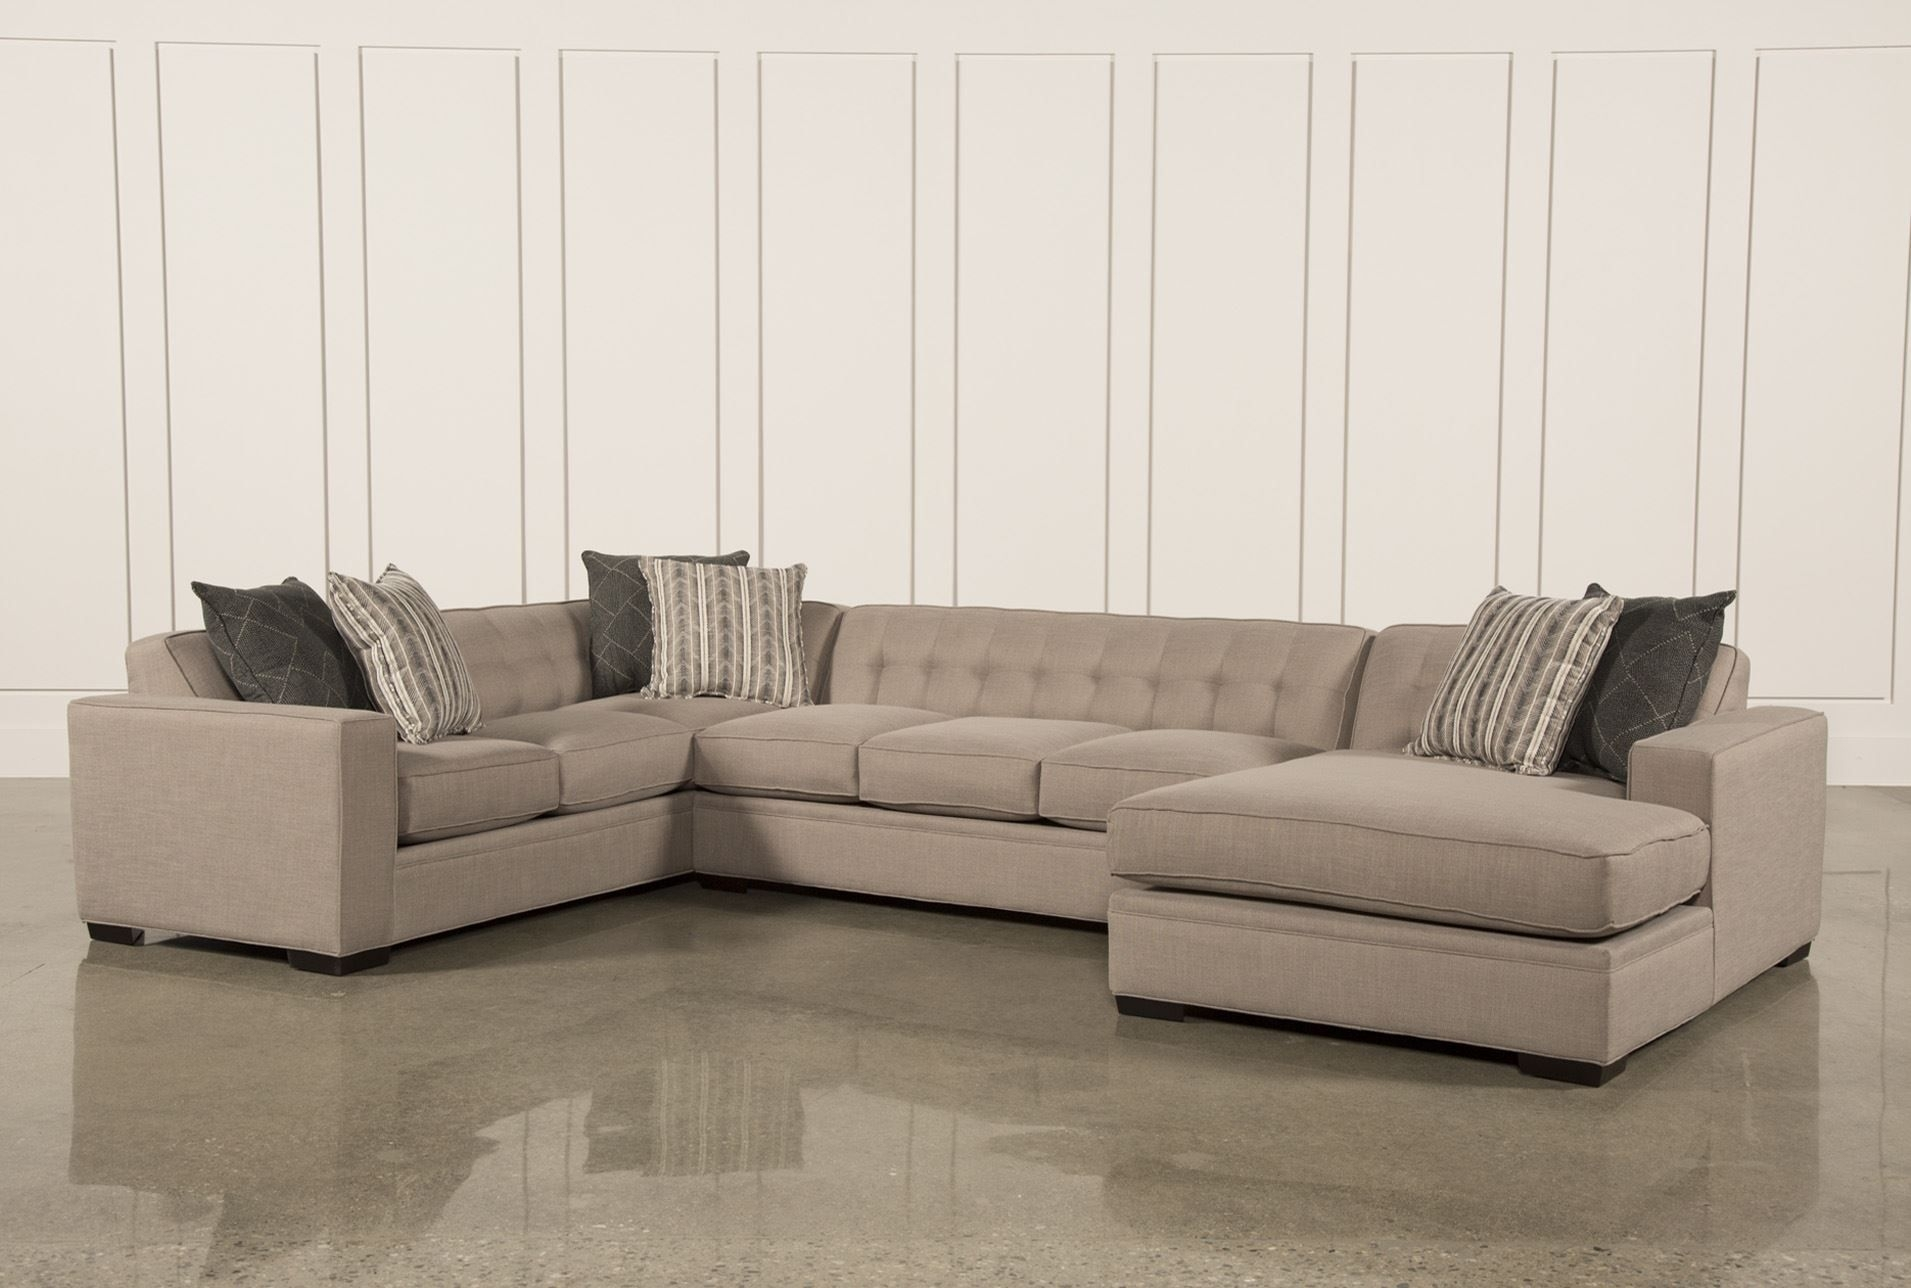 Corbin 3 Piece Sectional W/raf Chaise | New House: Loft | Pinterest pertaining to Norfolk Grey 3 Piece Sectionals With Laf Chaise (Image 5 of 30)